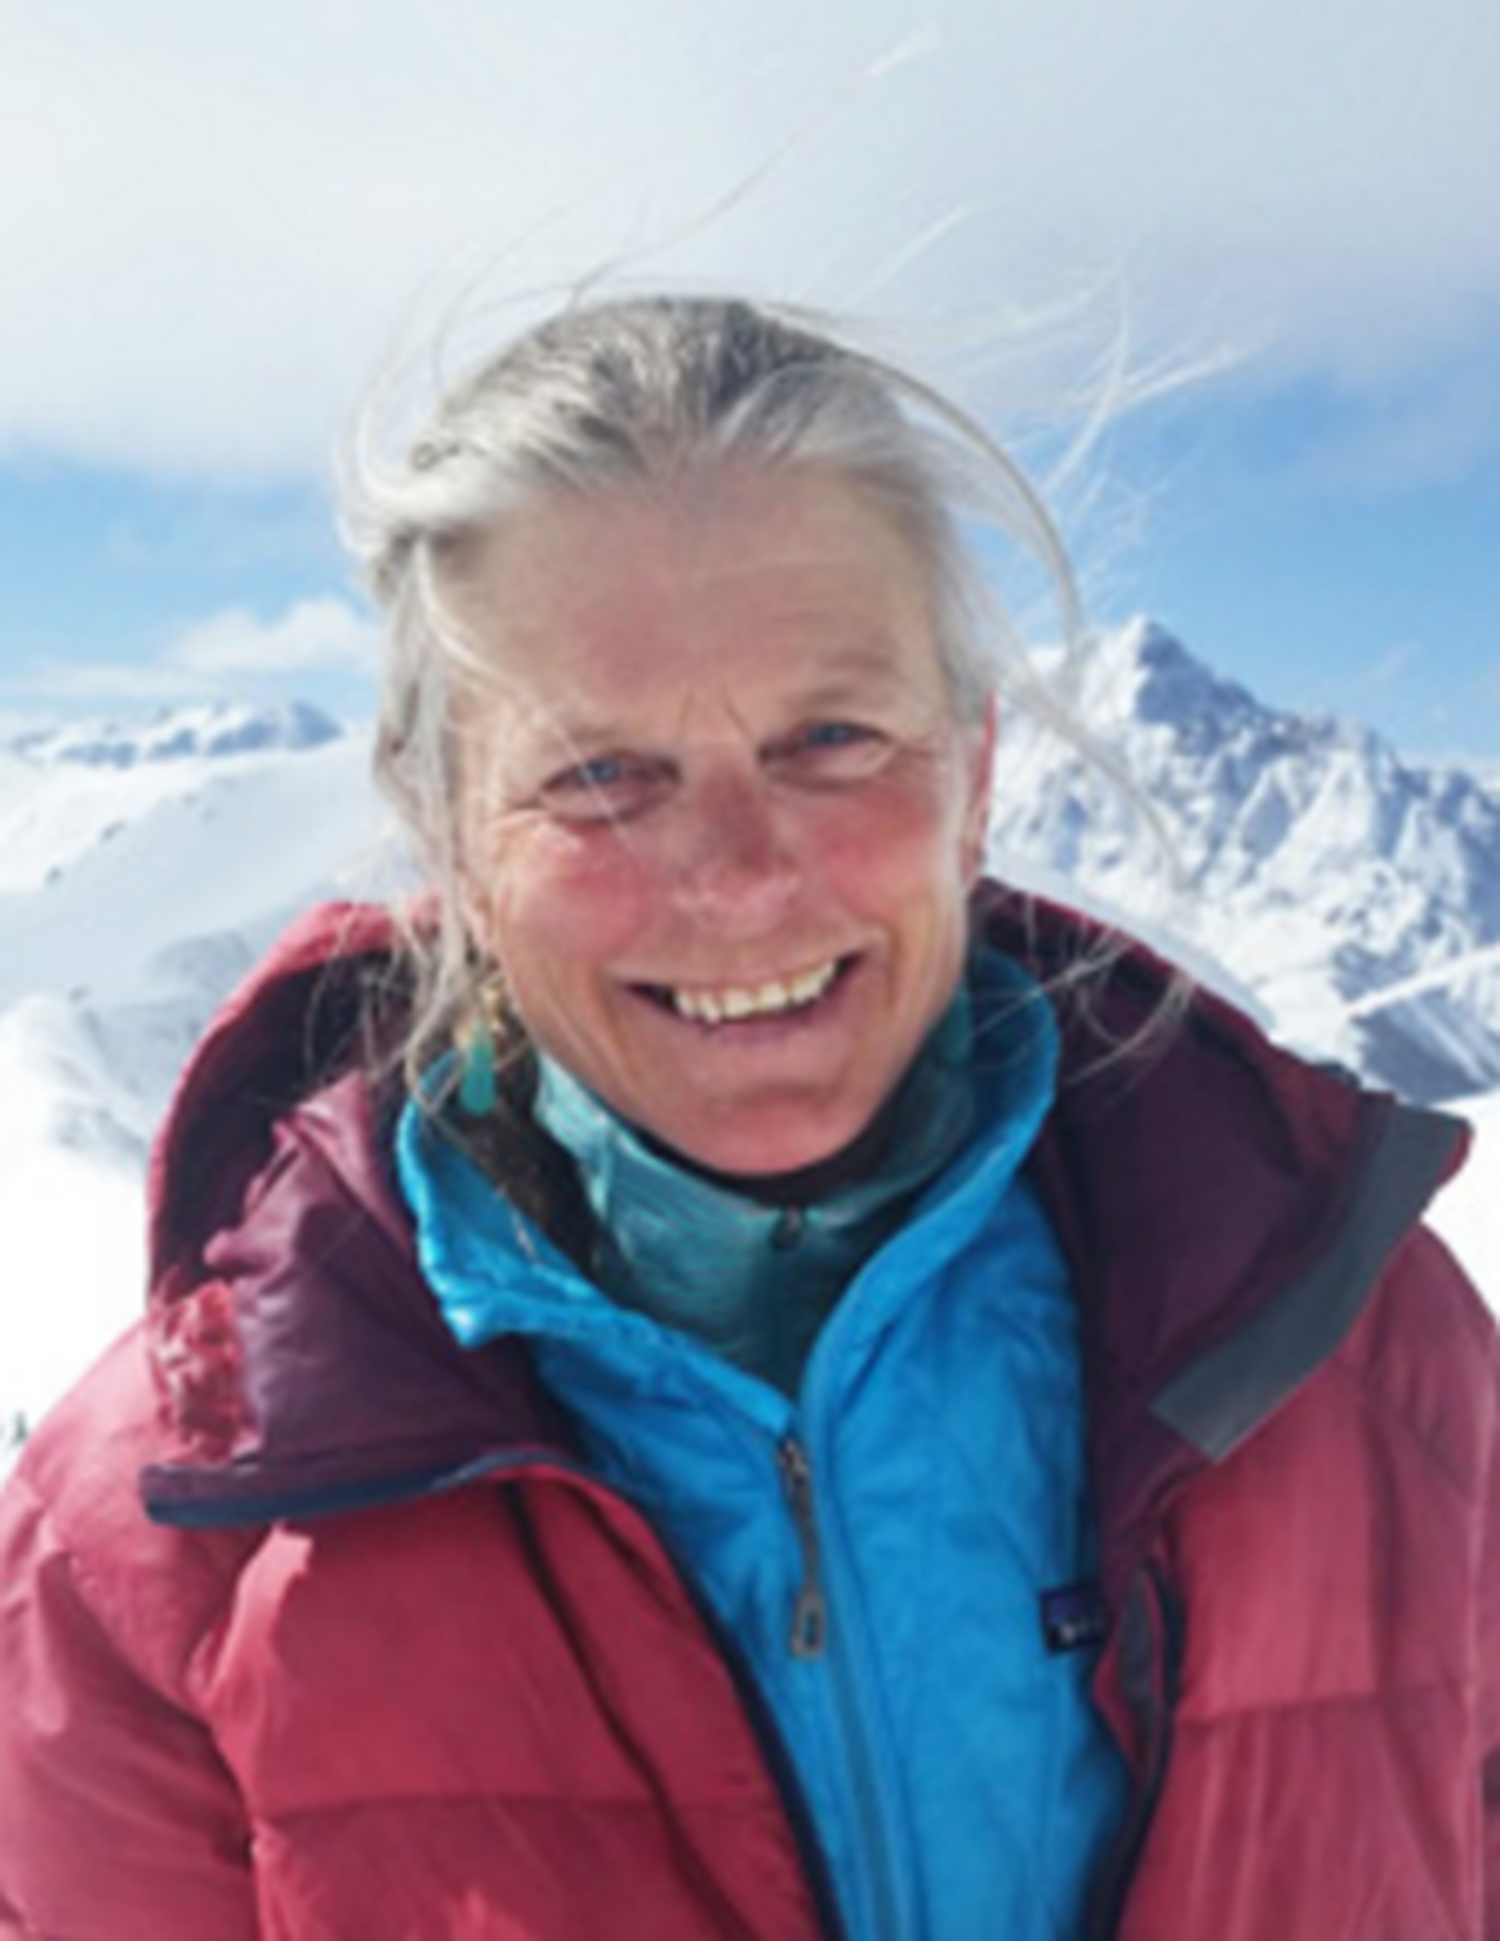 PATTI BANKS    Connecticut born, Patti lives in Colorado to pursue a life in the great outdoors. As a top examiner for PSIA in the rocky mountains she teaches a myriad of snow sports Patti's a conscious facilitator of experiential learning.     She's convinced she has the best office in the world! We agree.